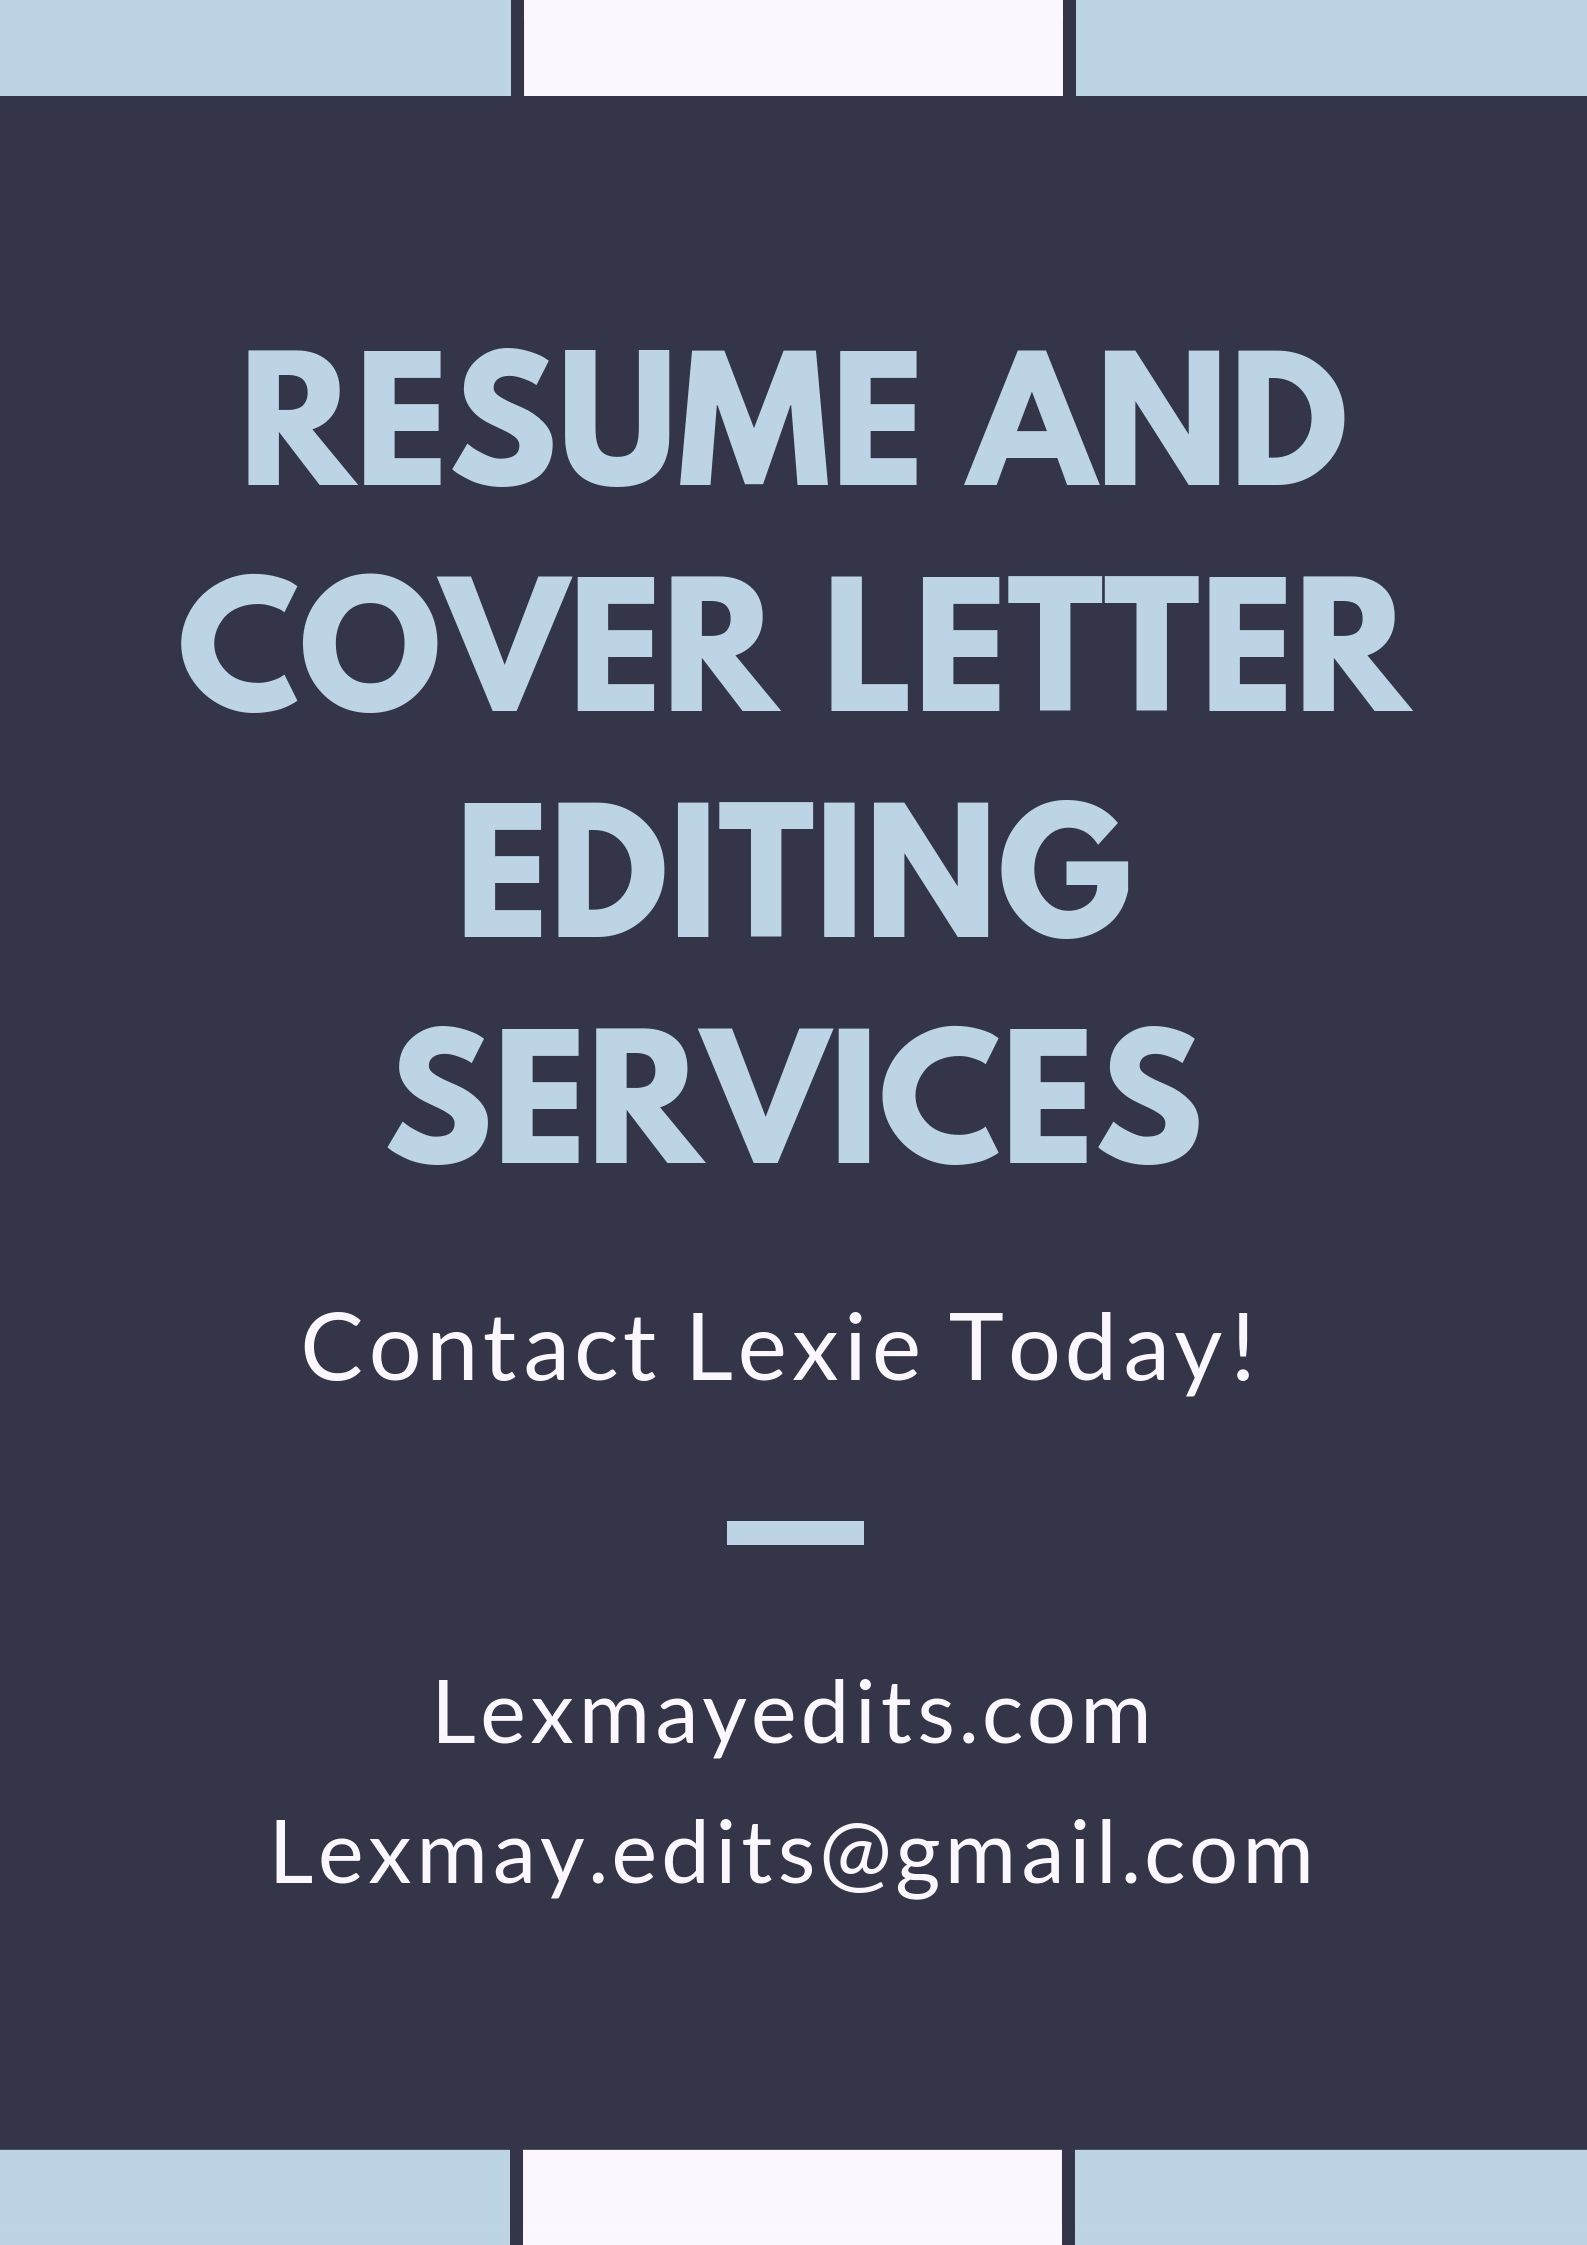 contact lexie for professional help with your resume and